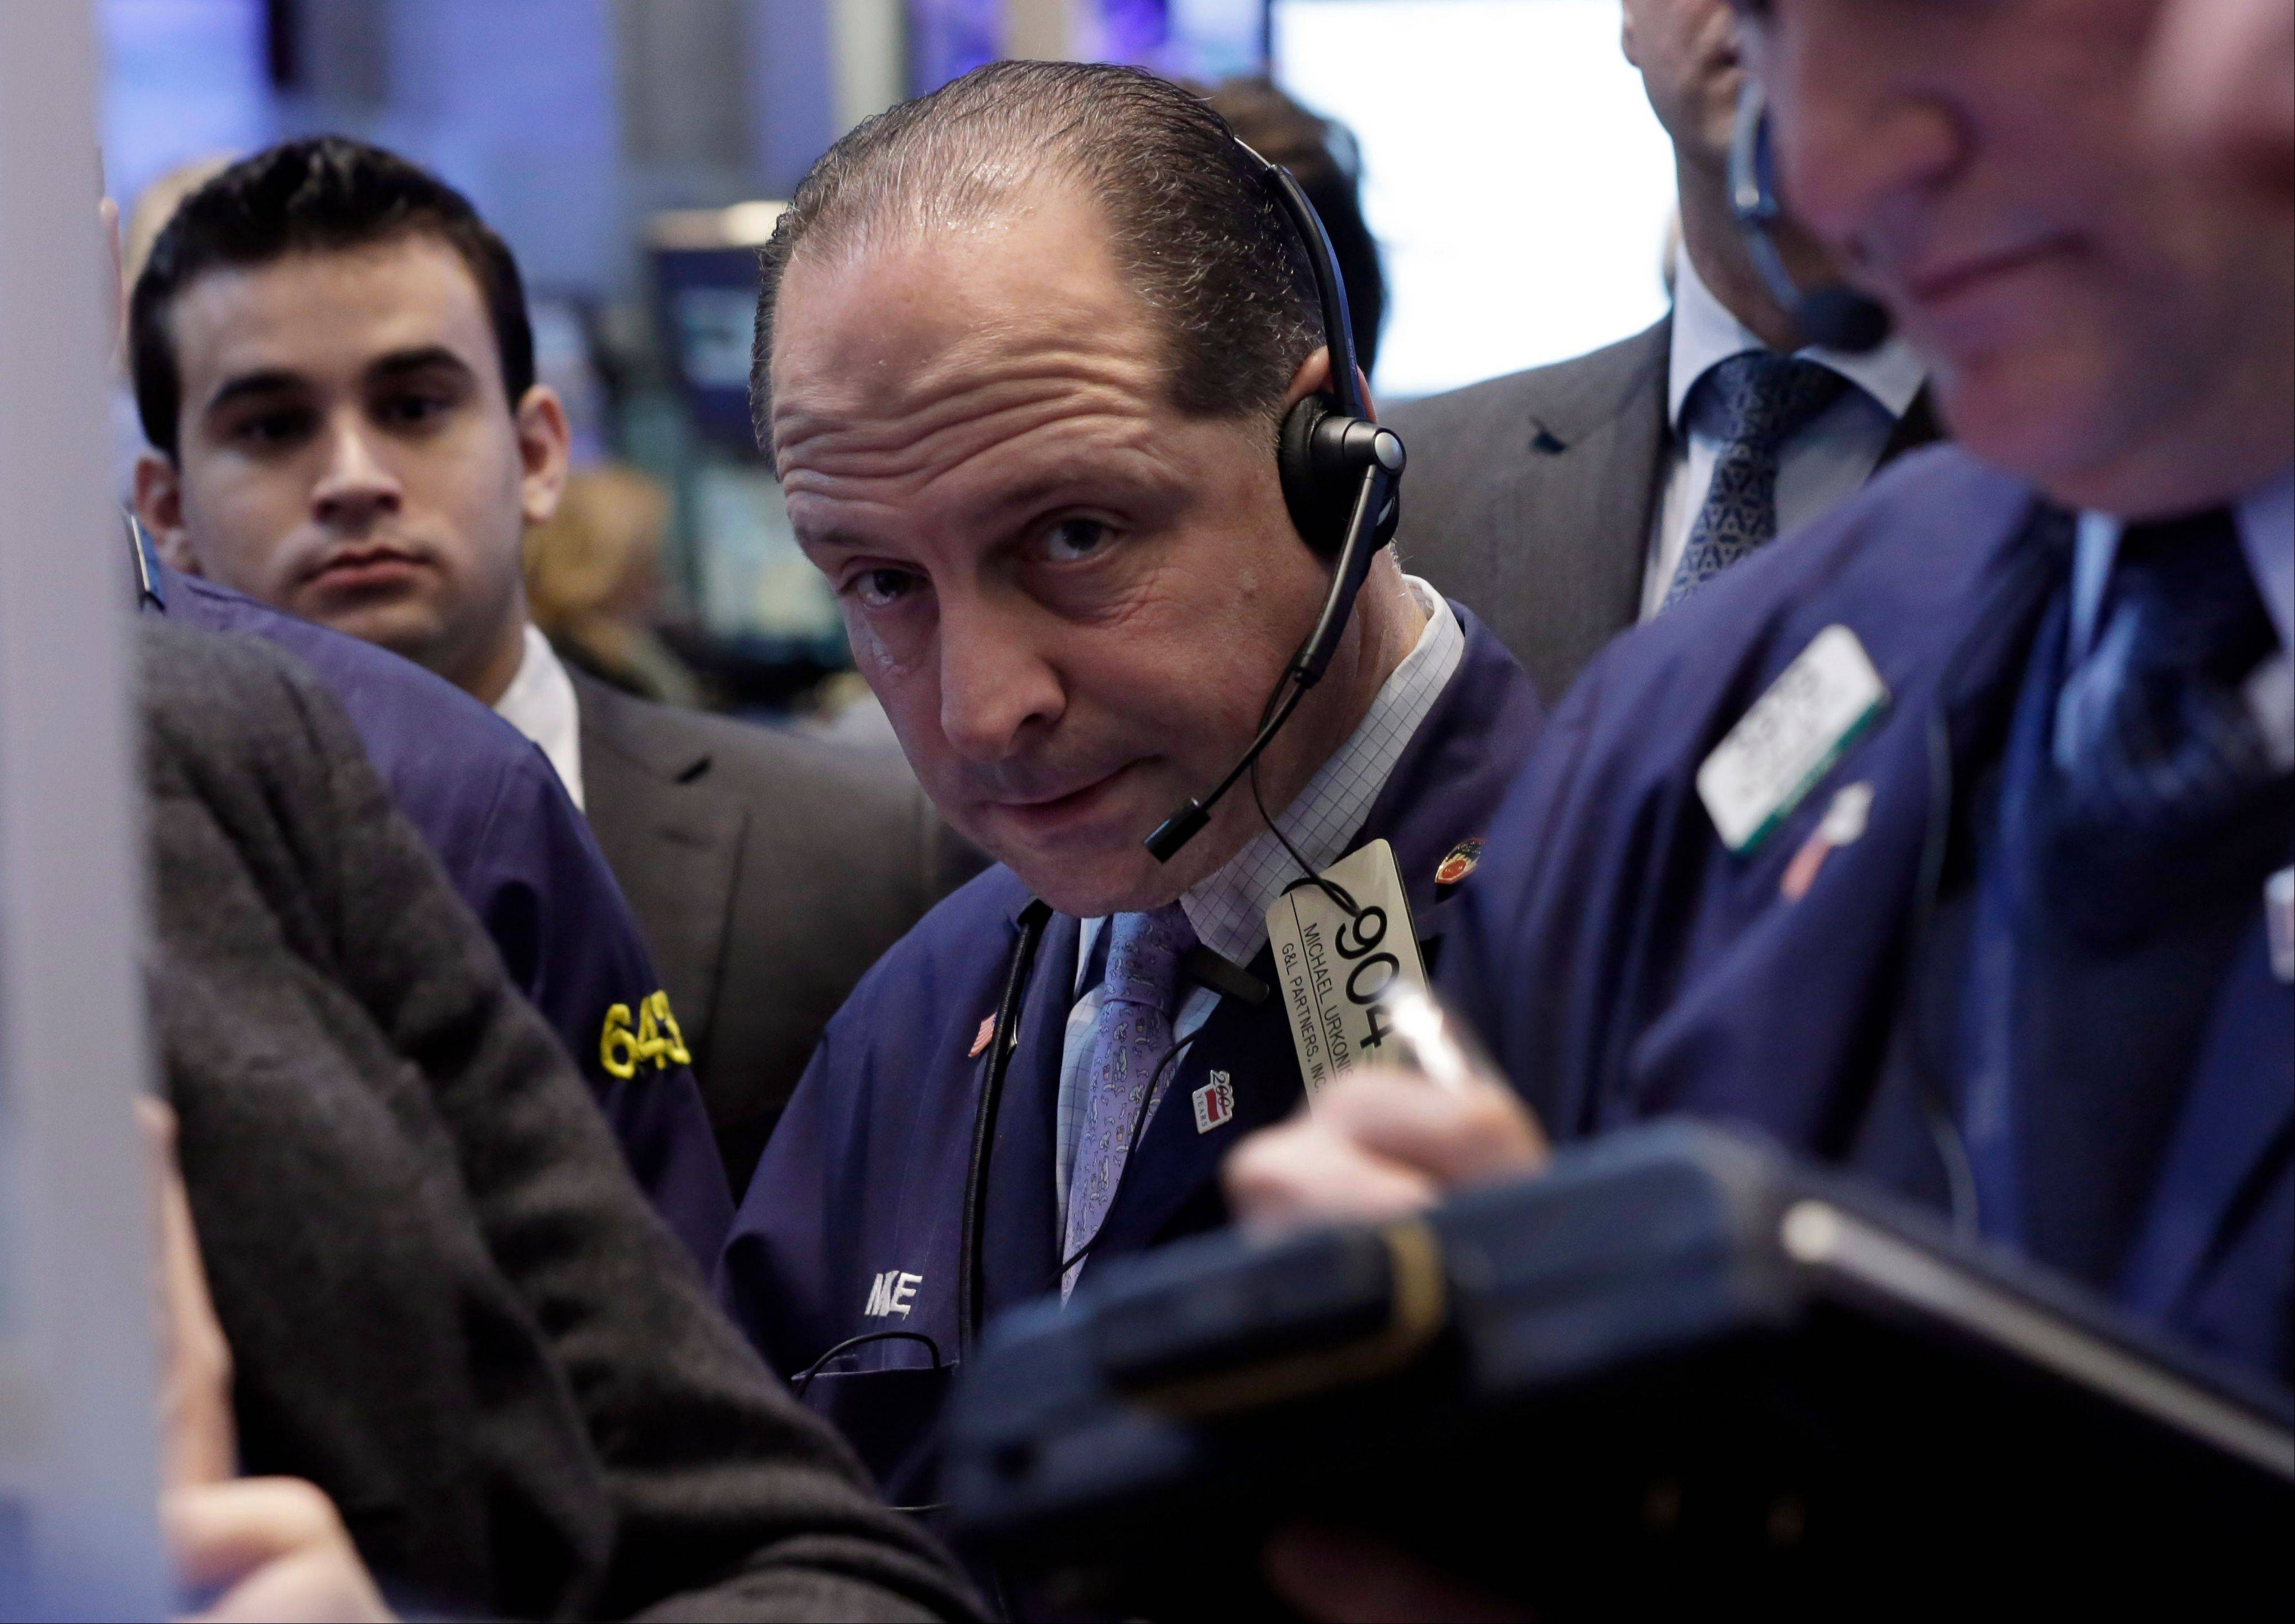 U.S. stocks fell Monday, following the longest rally for the Standard & Poor's 500 Index since 2004, as a drop in pending home sales overshadowed a rise in durable-goods orders while investors watched earnings.